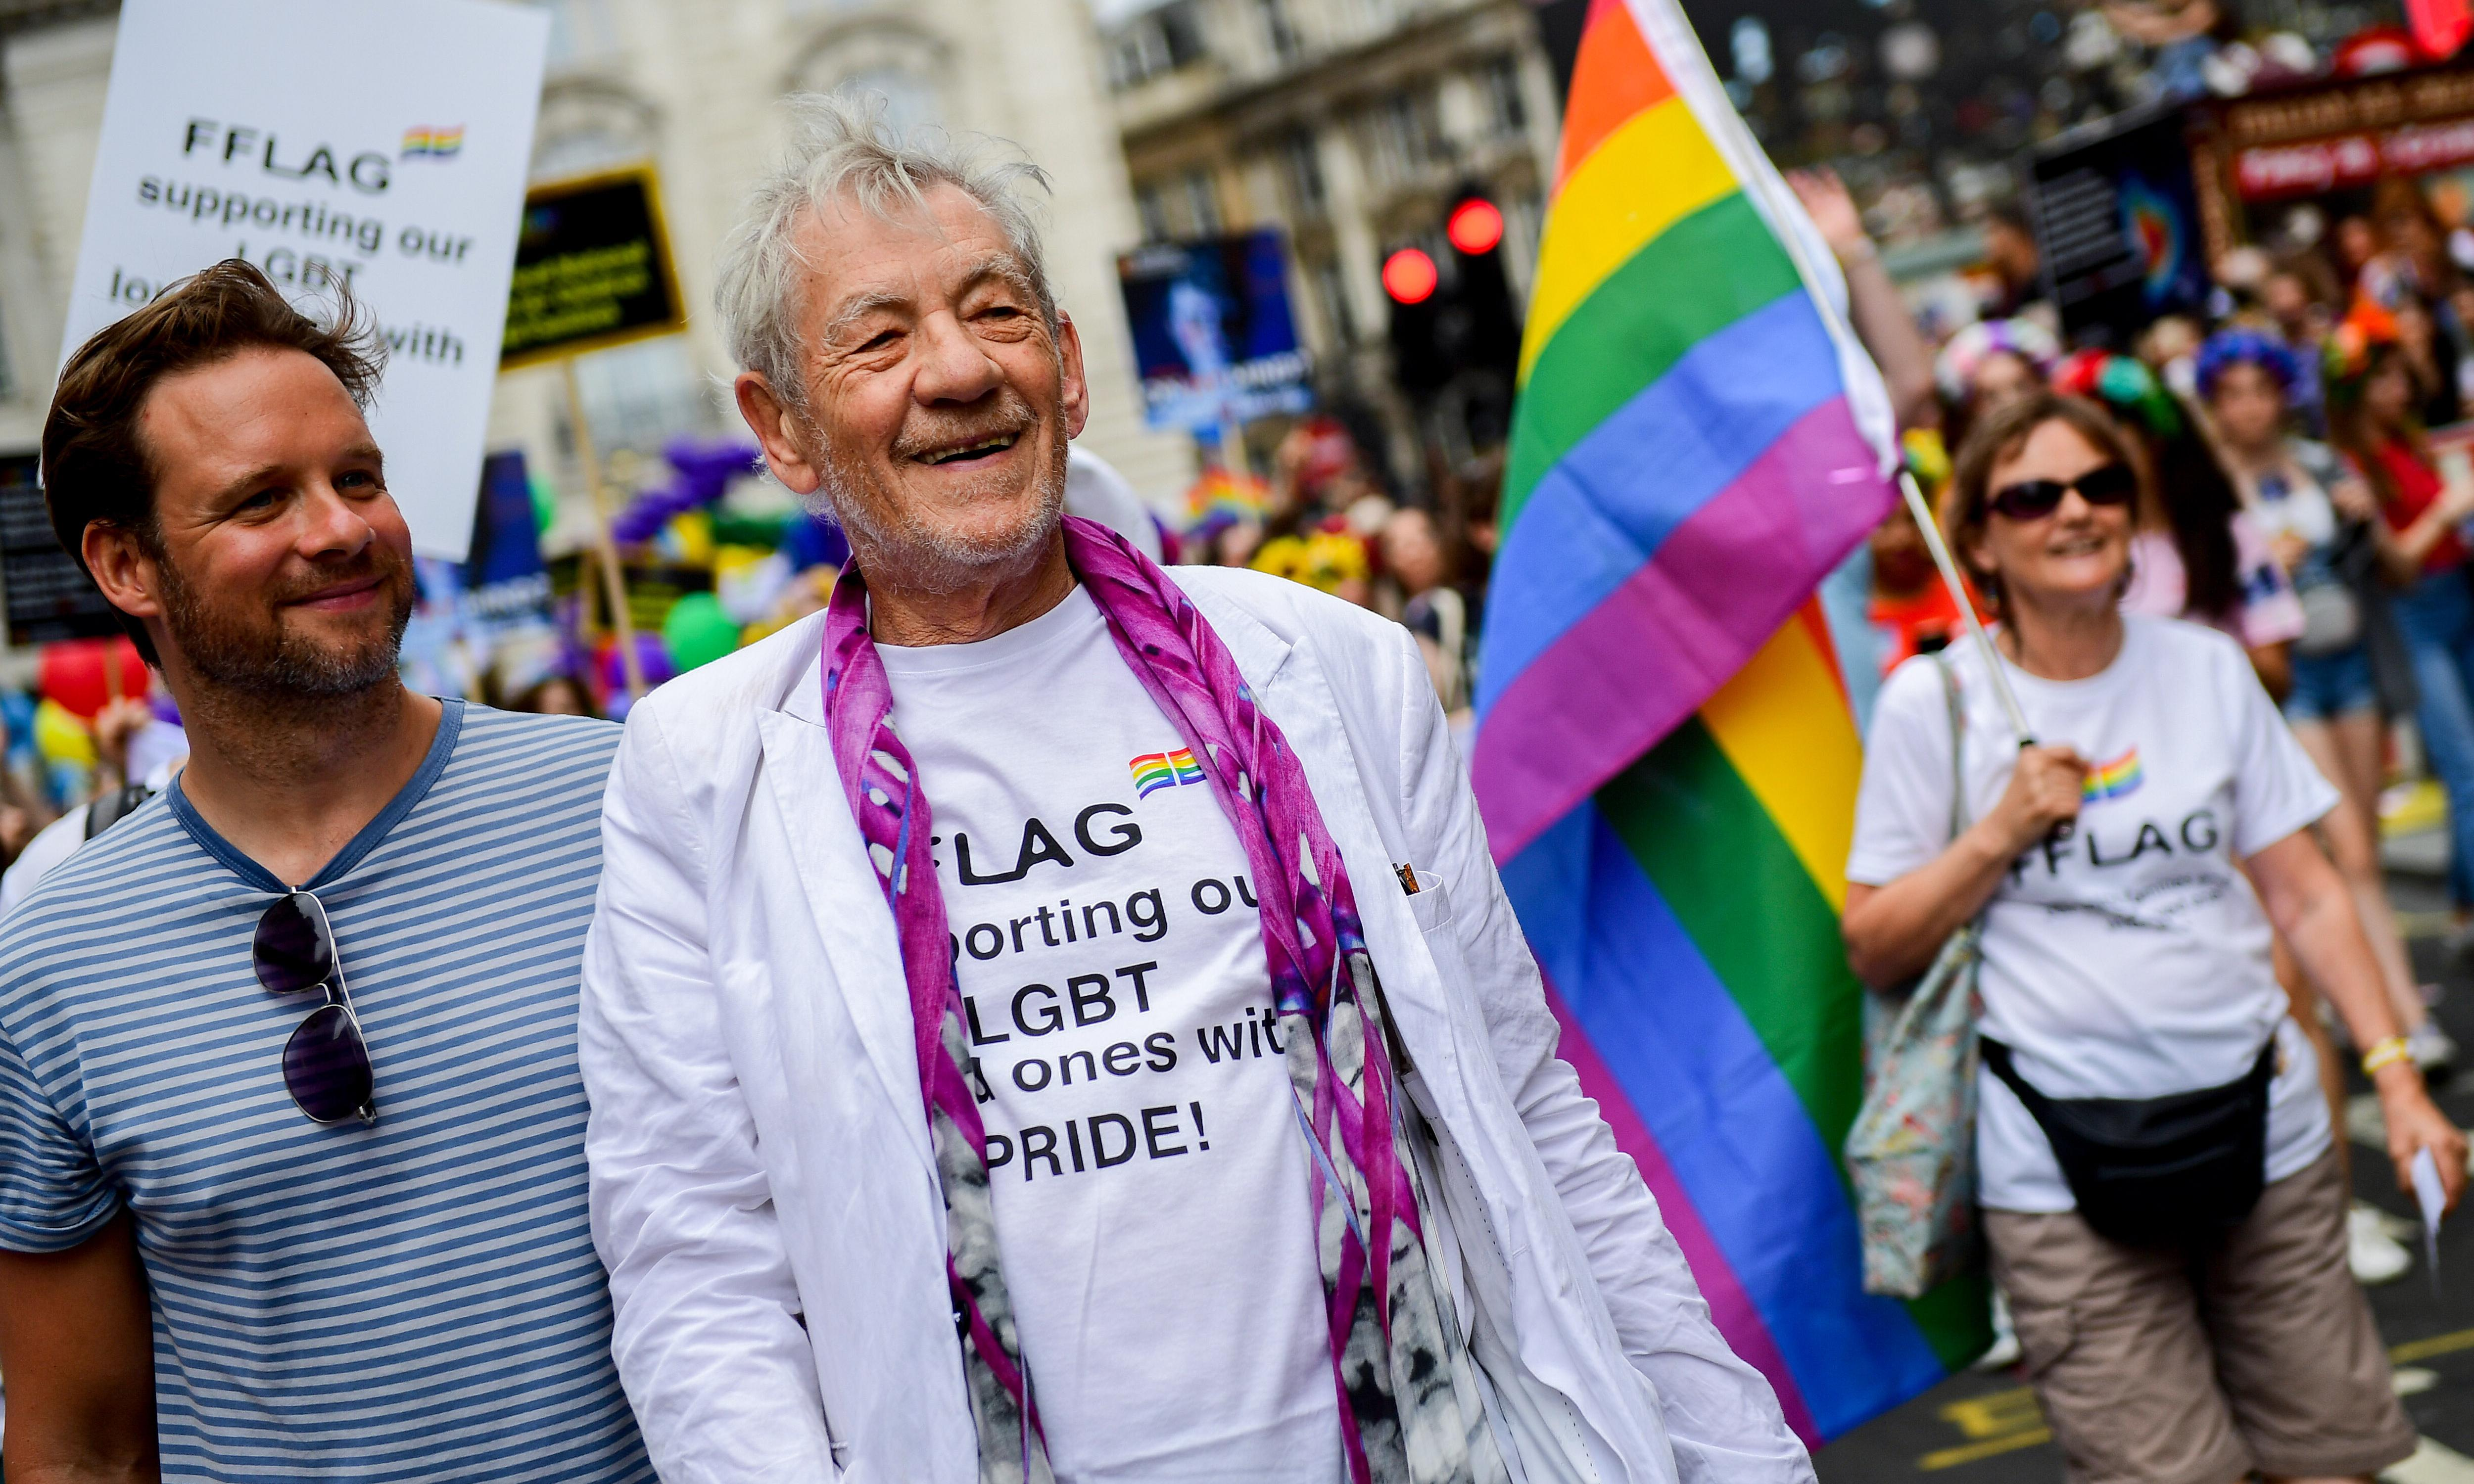 This year's Pride biggest yet, claim march organisers